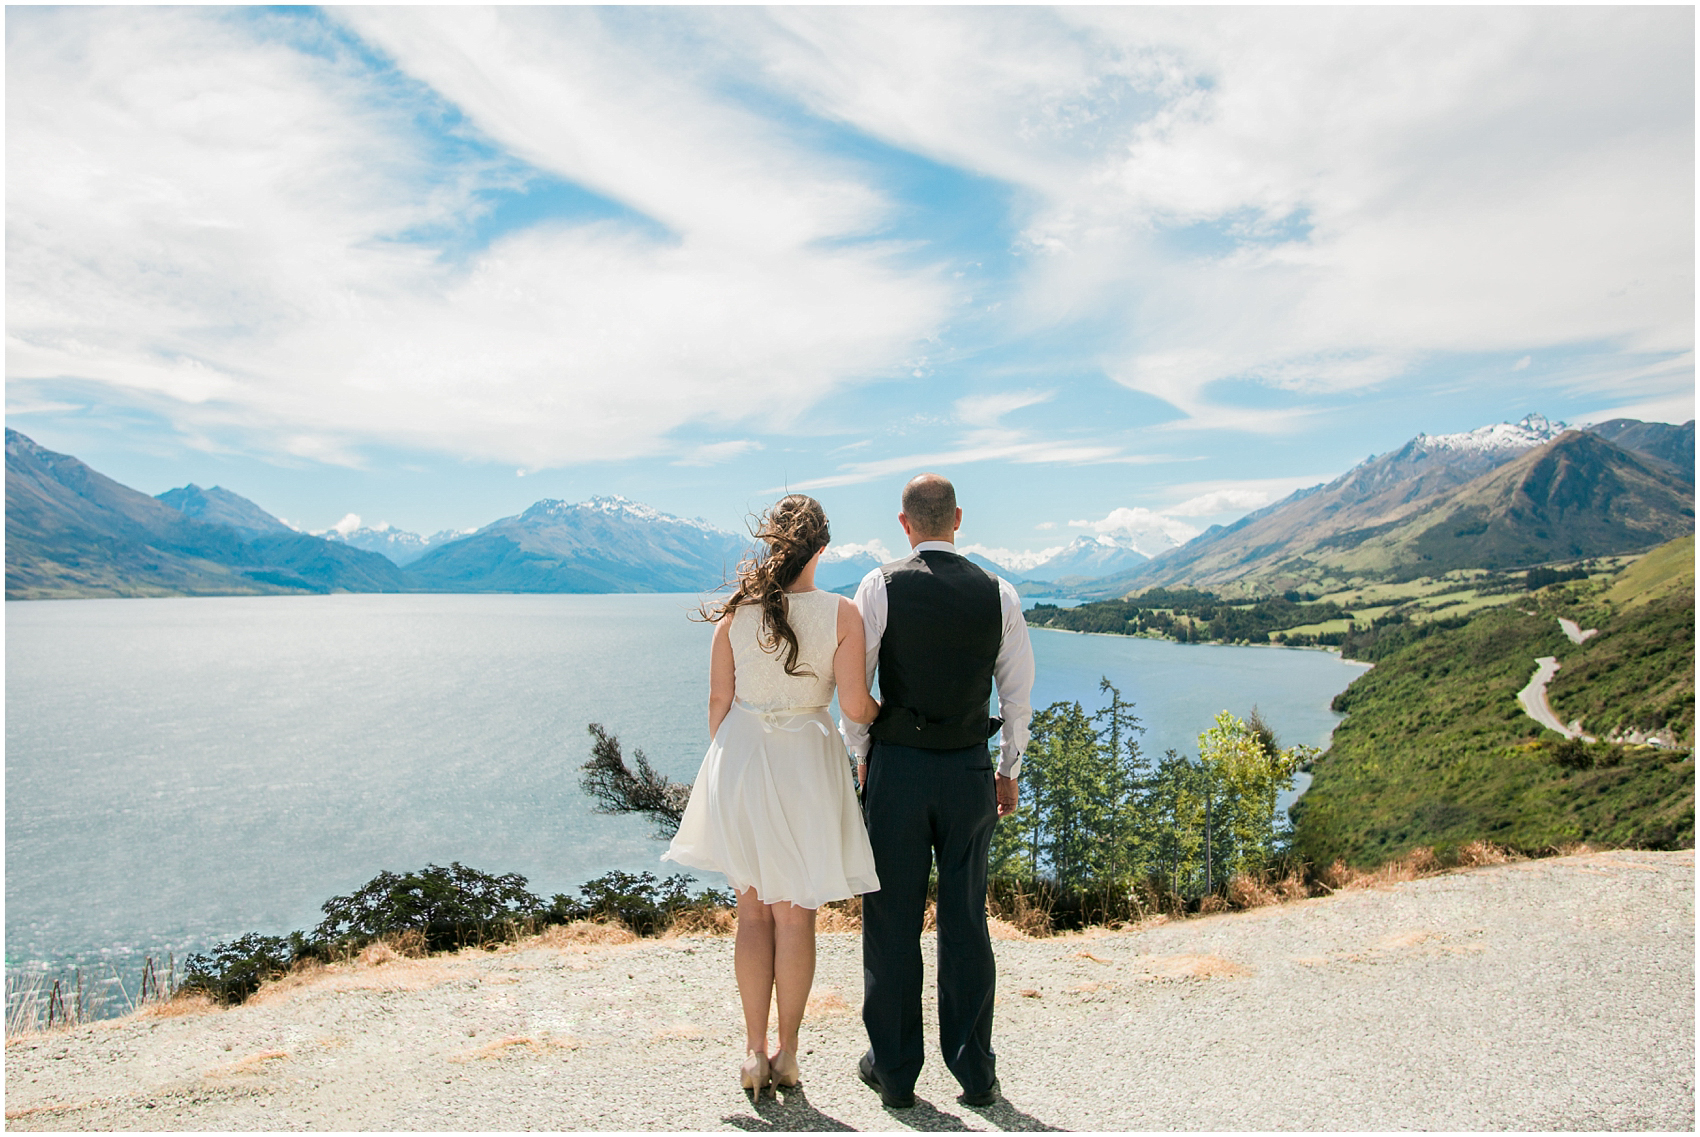 Queenstown New Zealand Wedding Photographer Bruna Fabricio Smetona Photo-0075.jpg